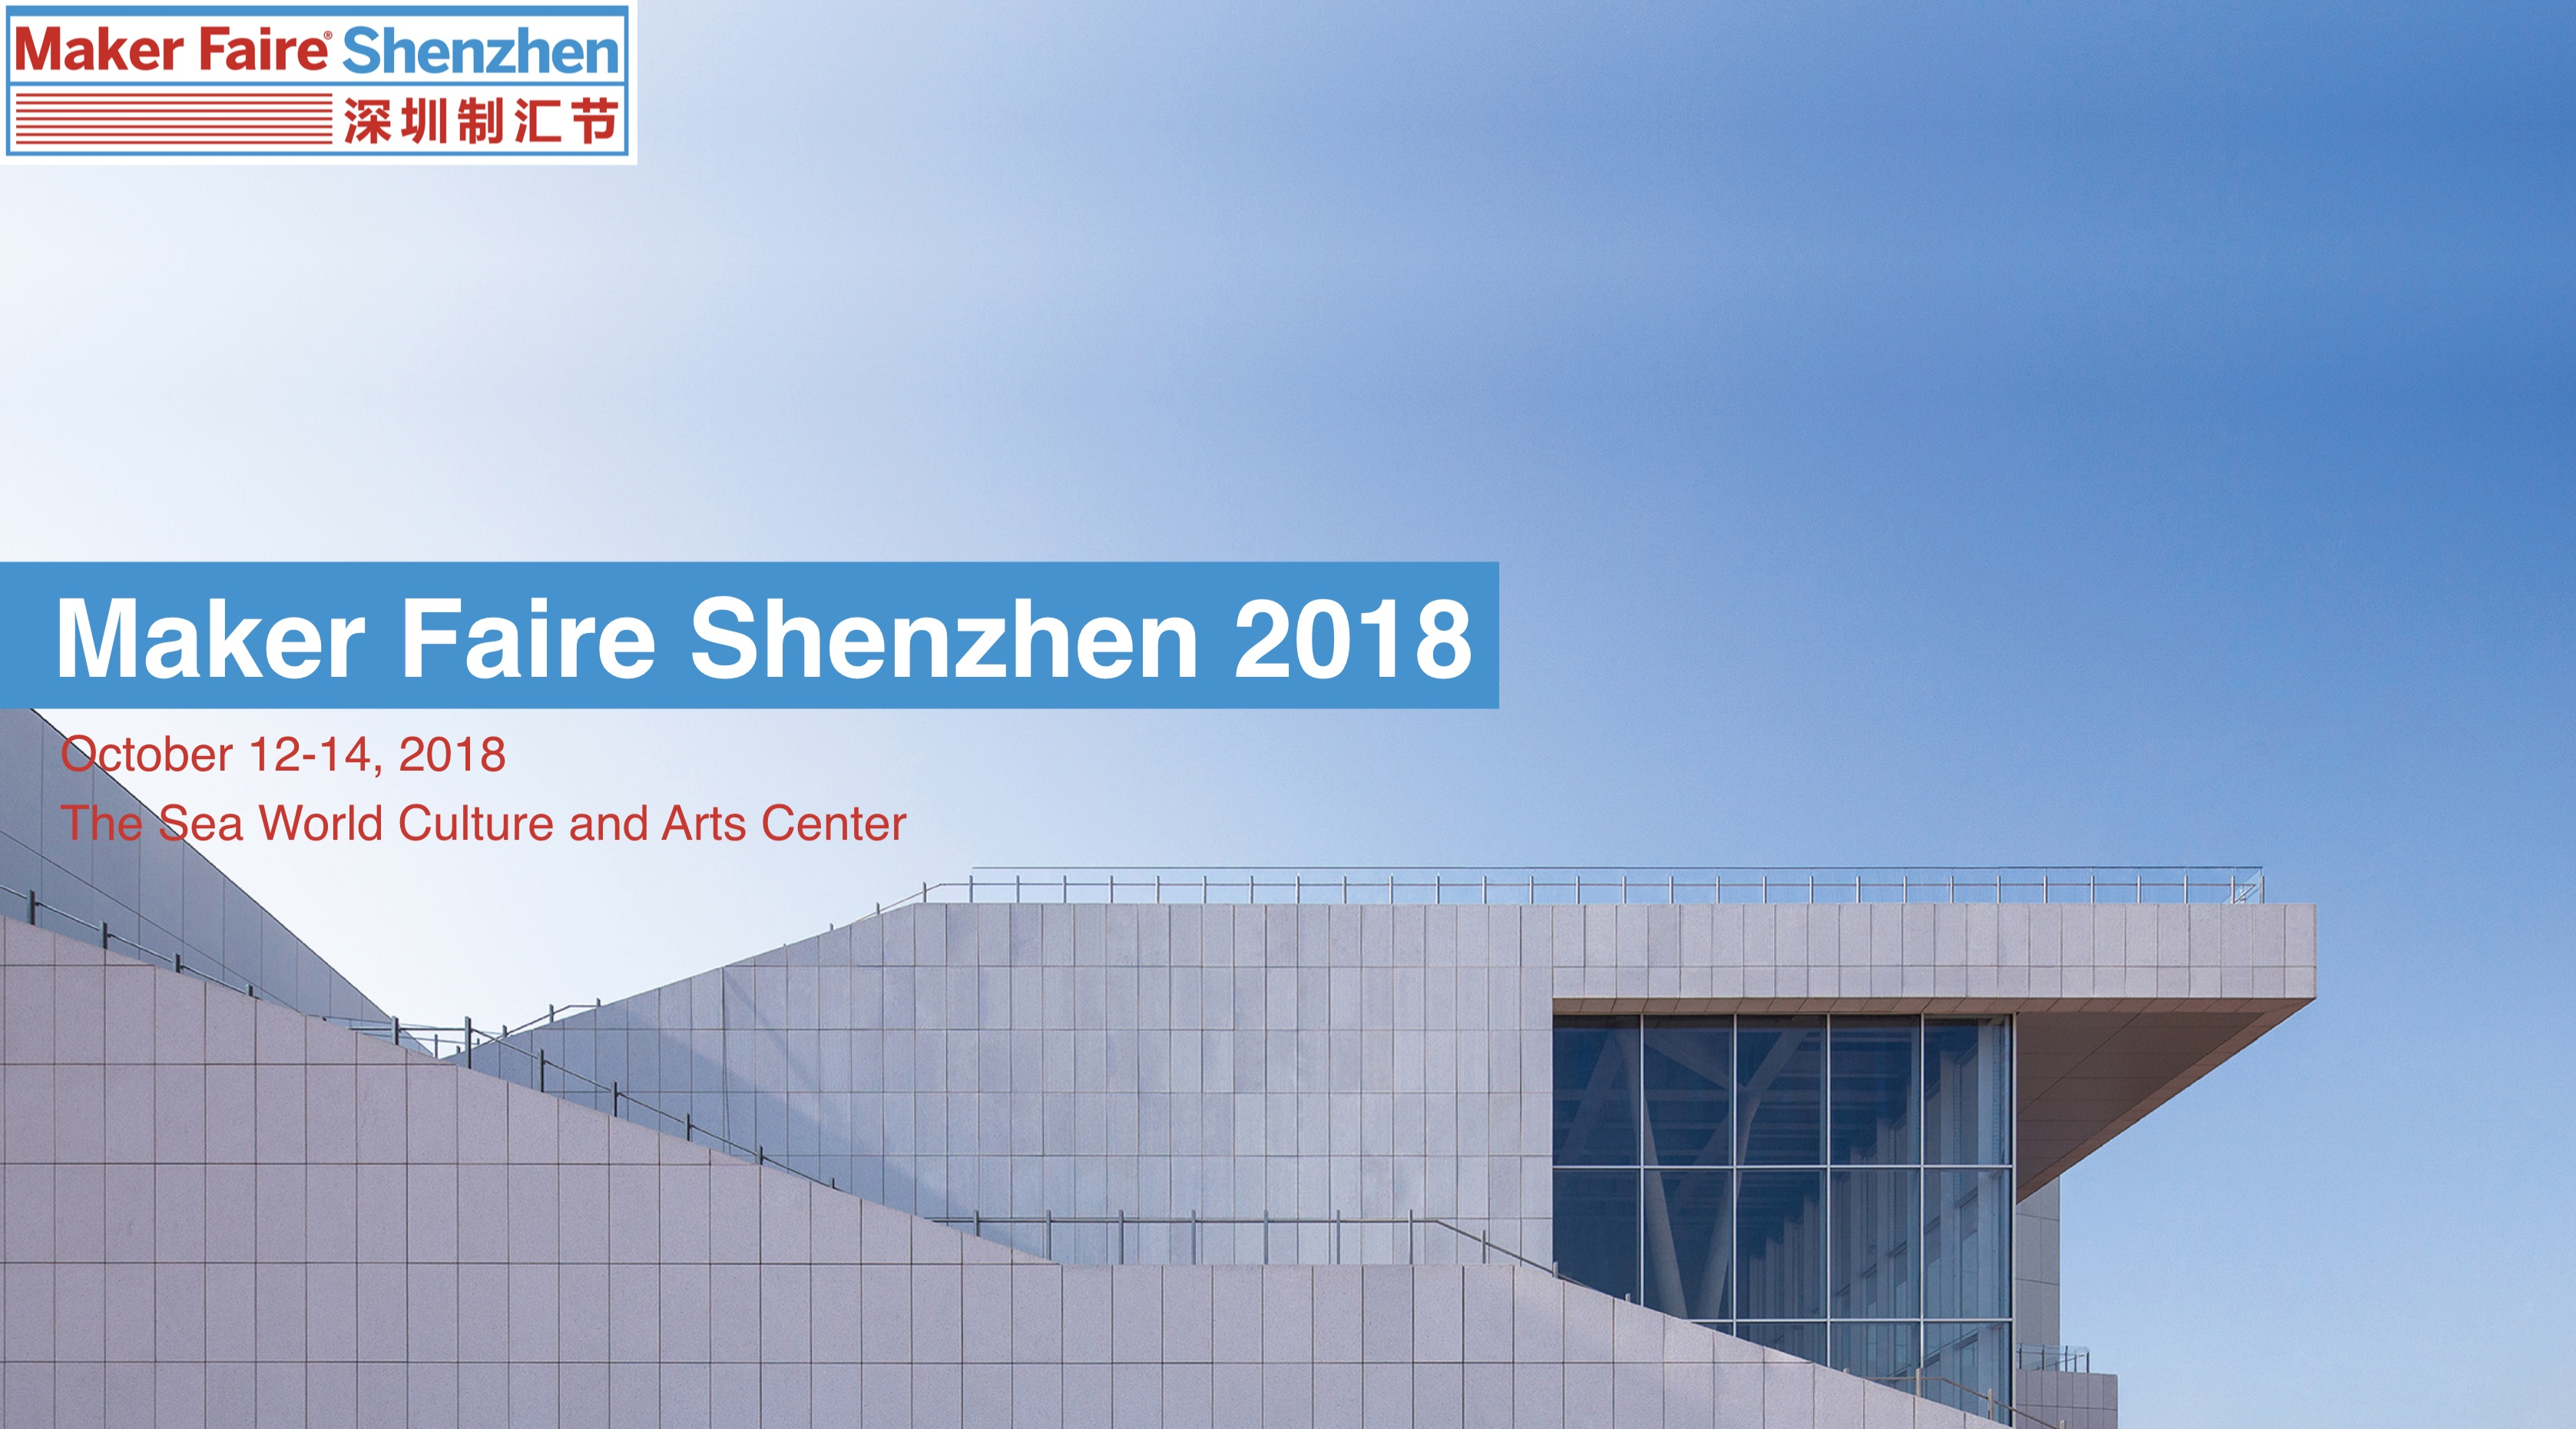 Maker Faire Shenzhen 2018 Is Now Calling for Makers